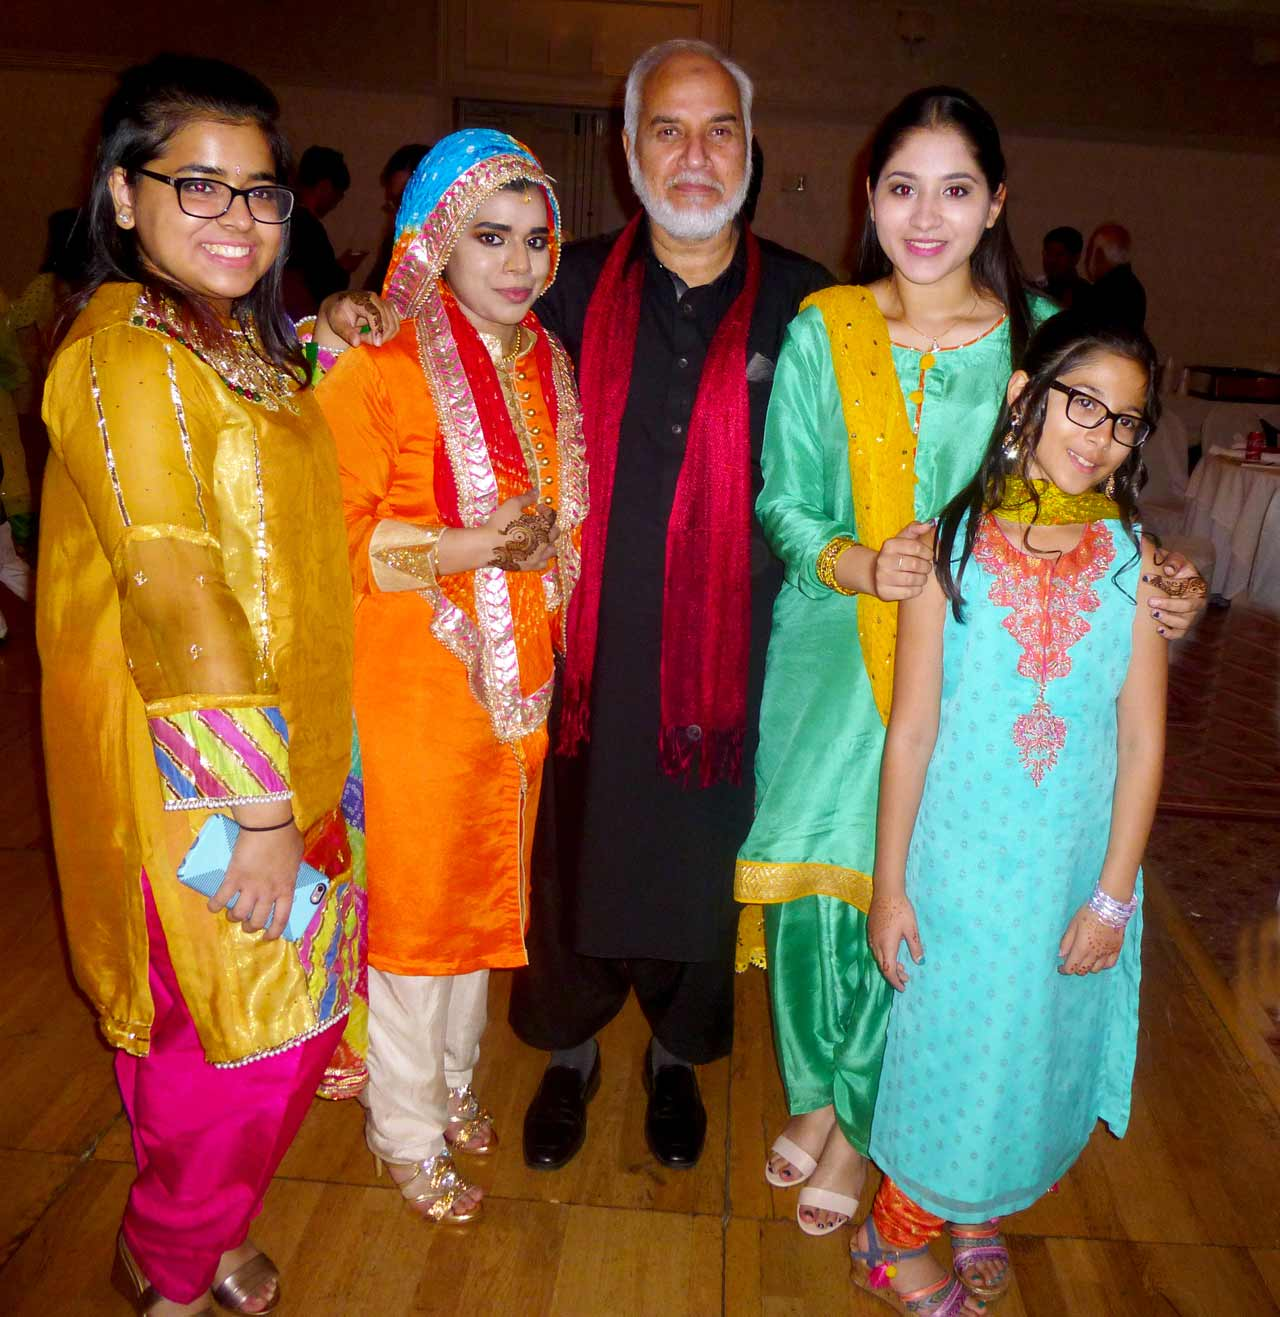 Shaikh Amin's son Tariq posing with his nieces before the Mehndi ceremony.